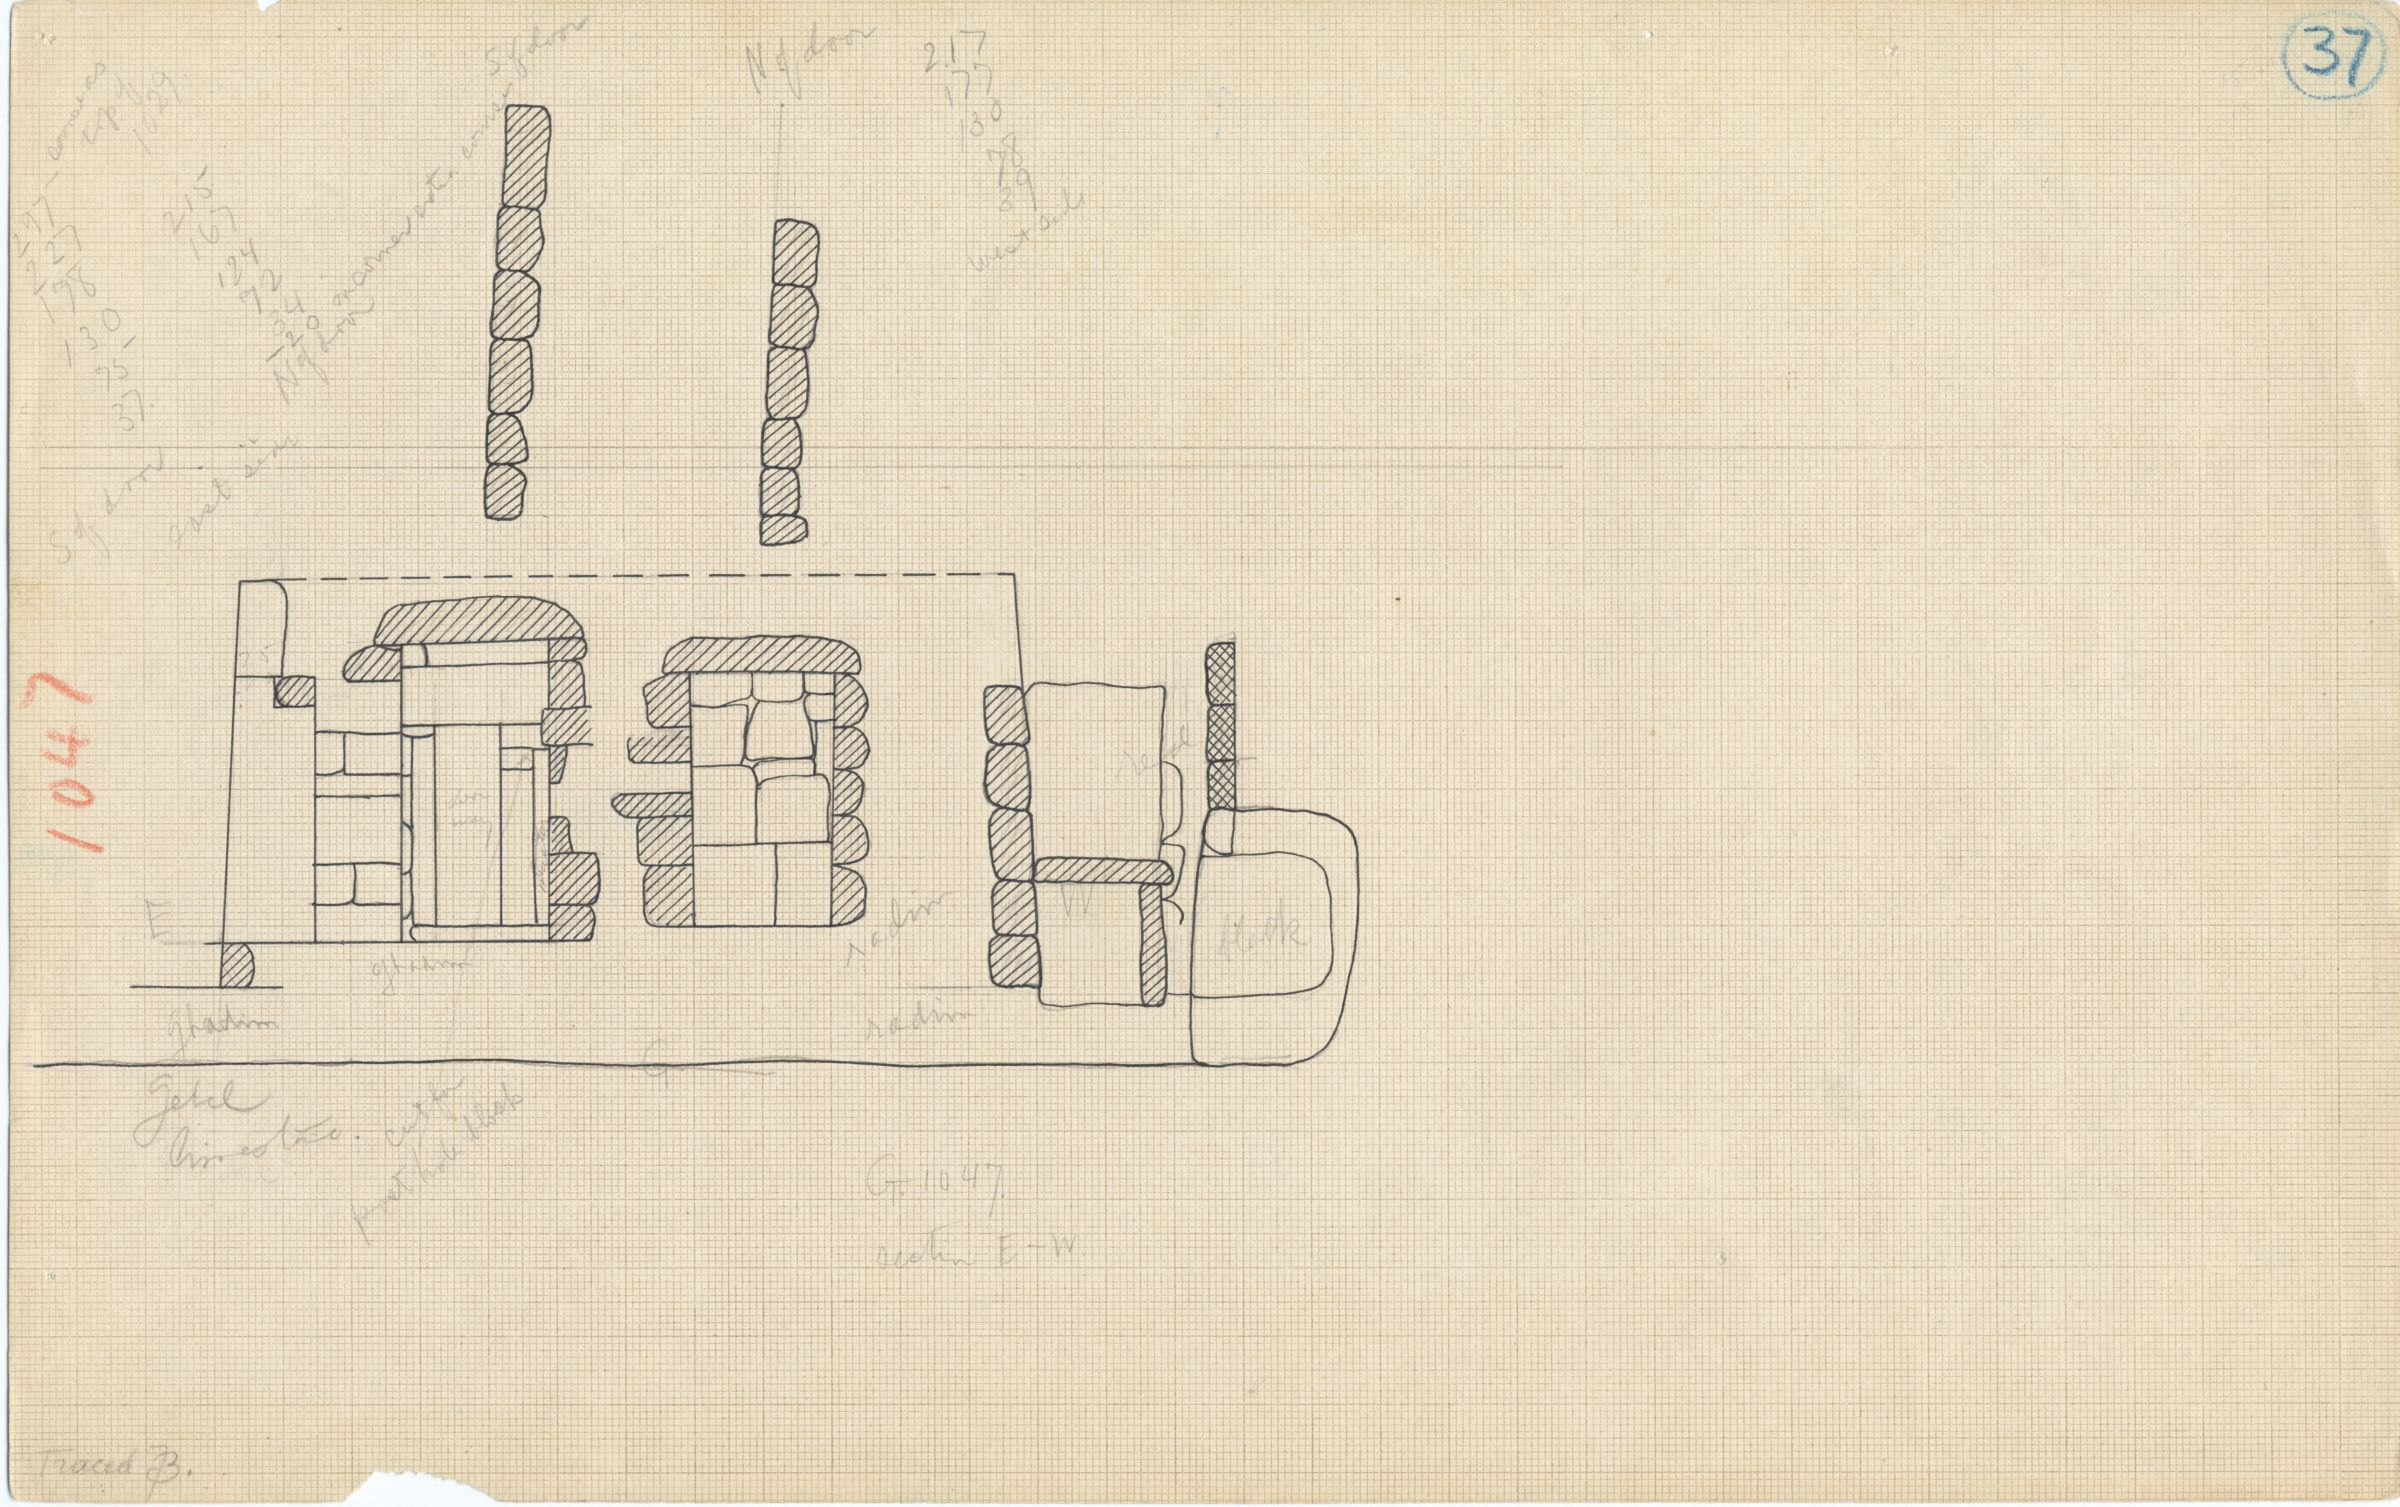 Maps and plans: G 1047, Section east-west